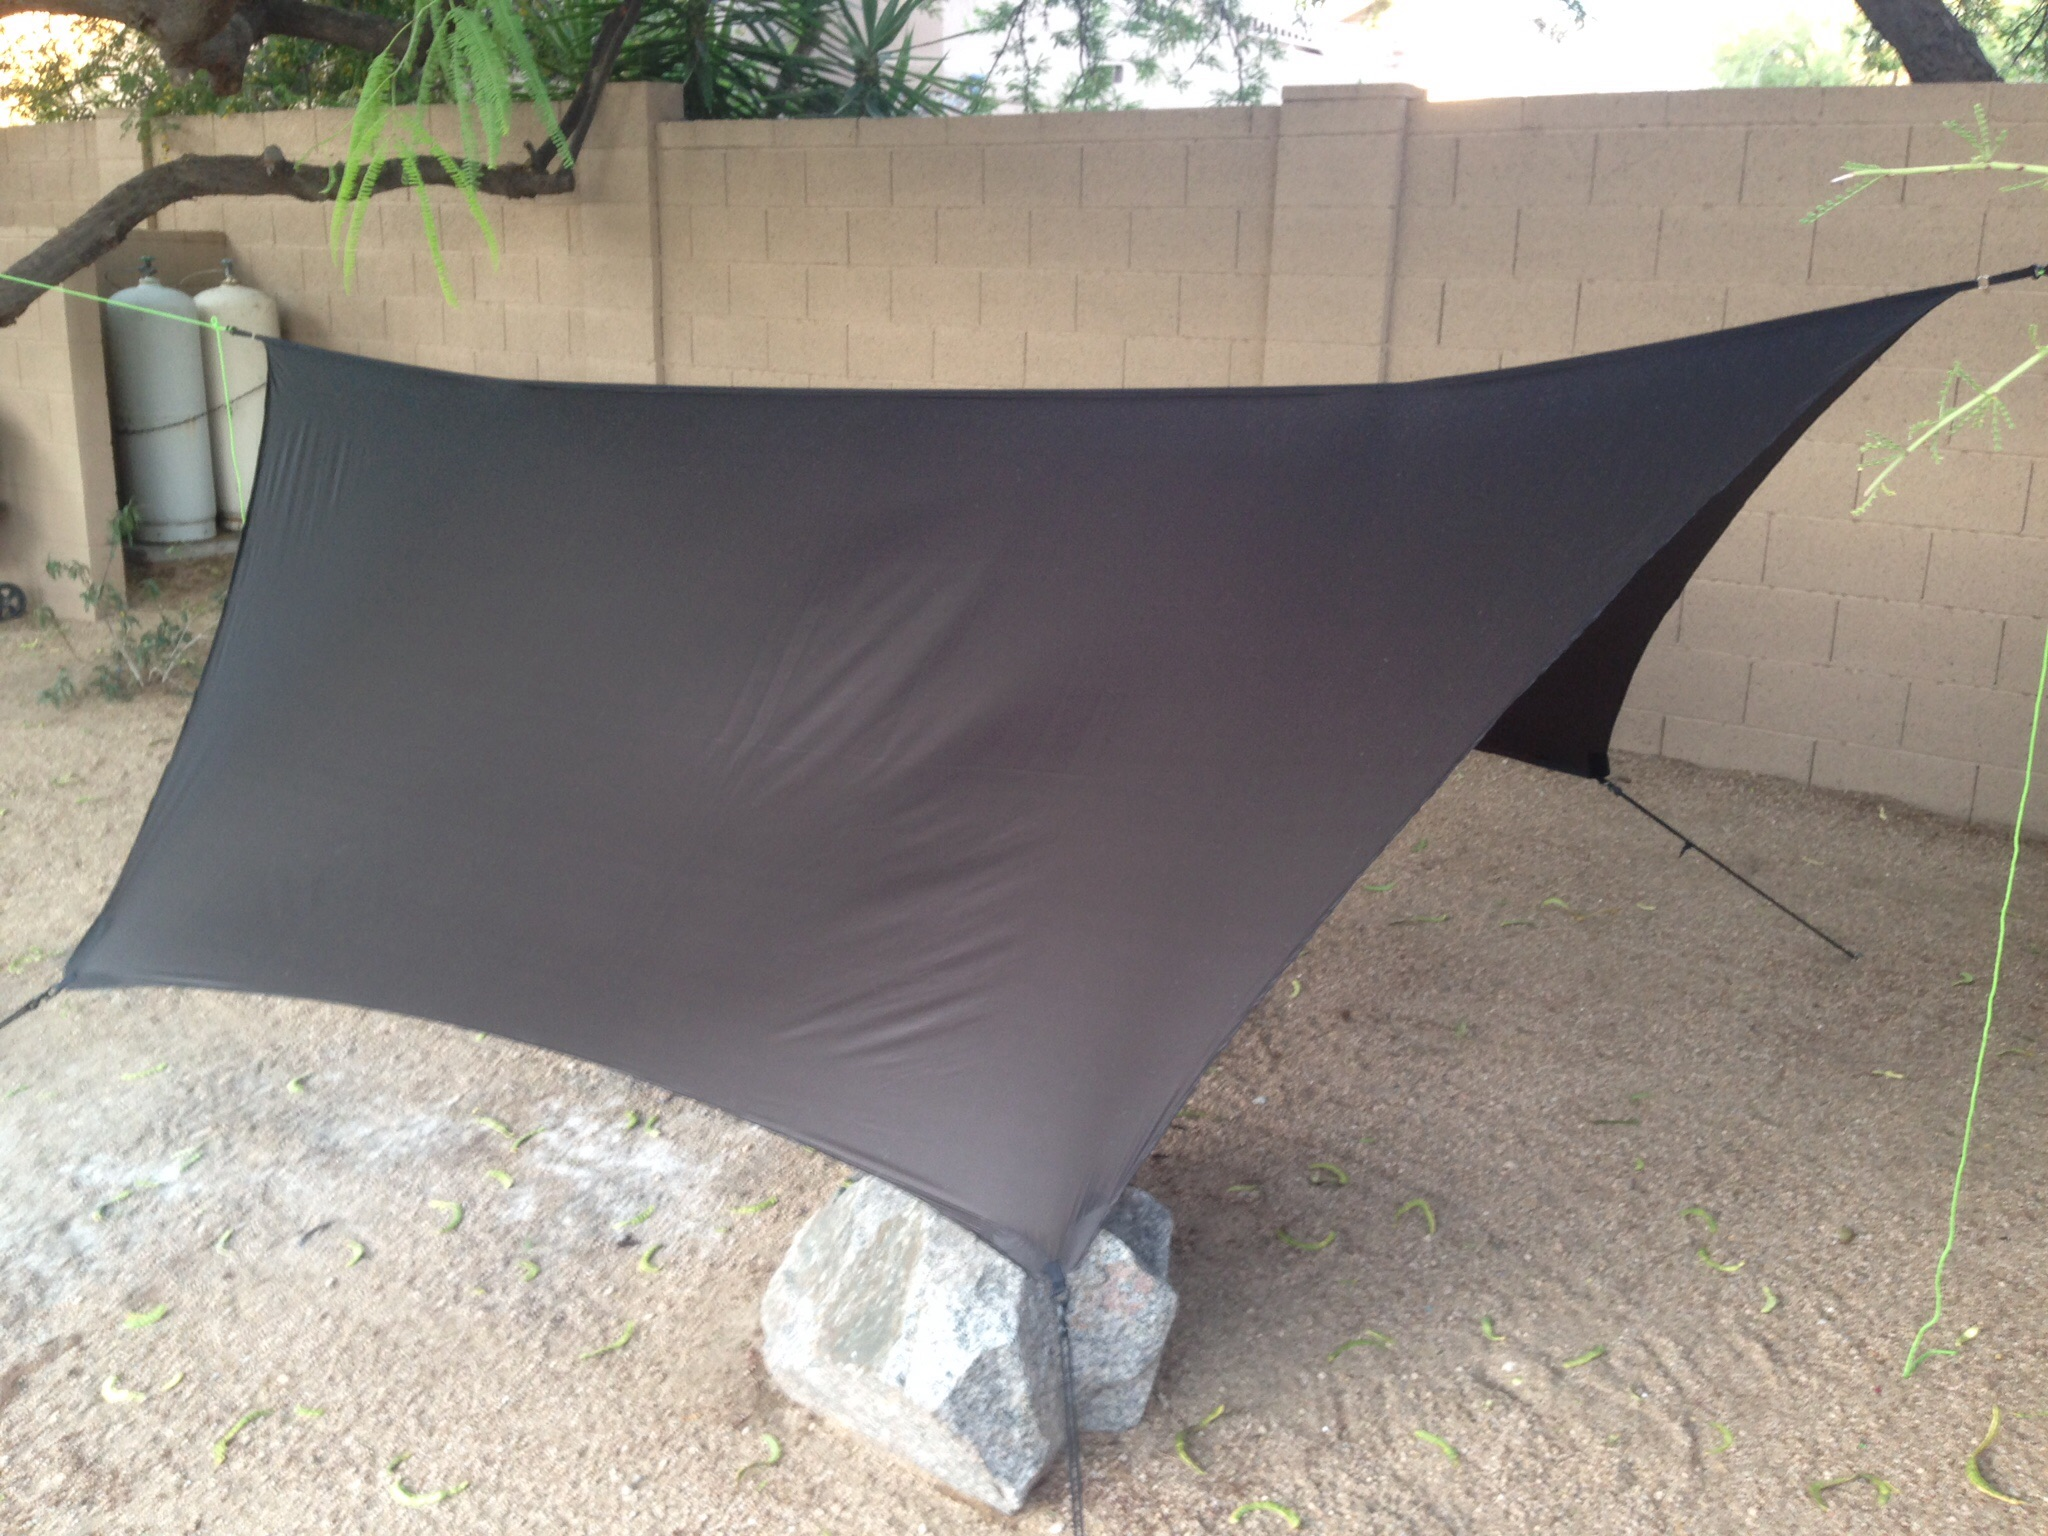 11 foot silnylon hex tarp